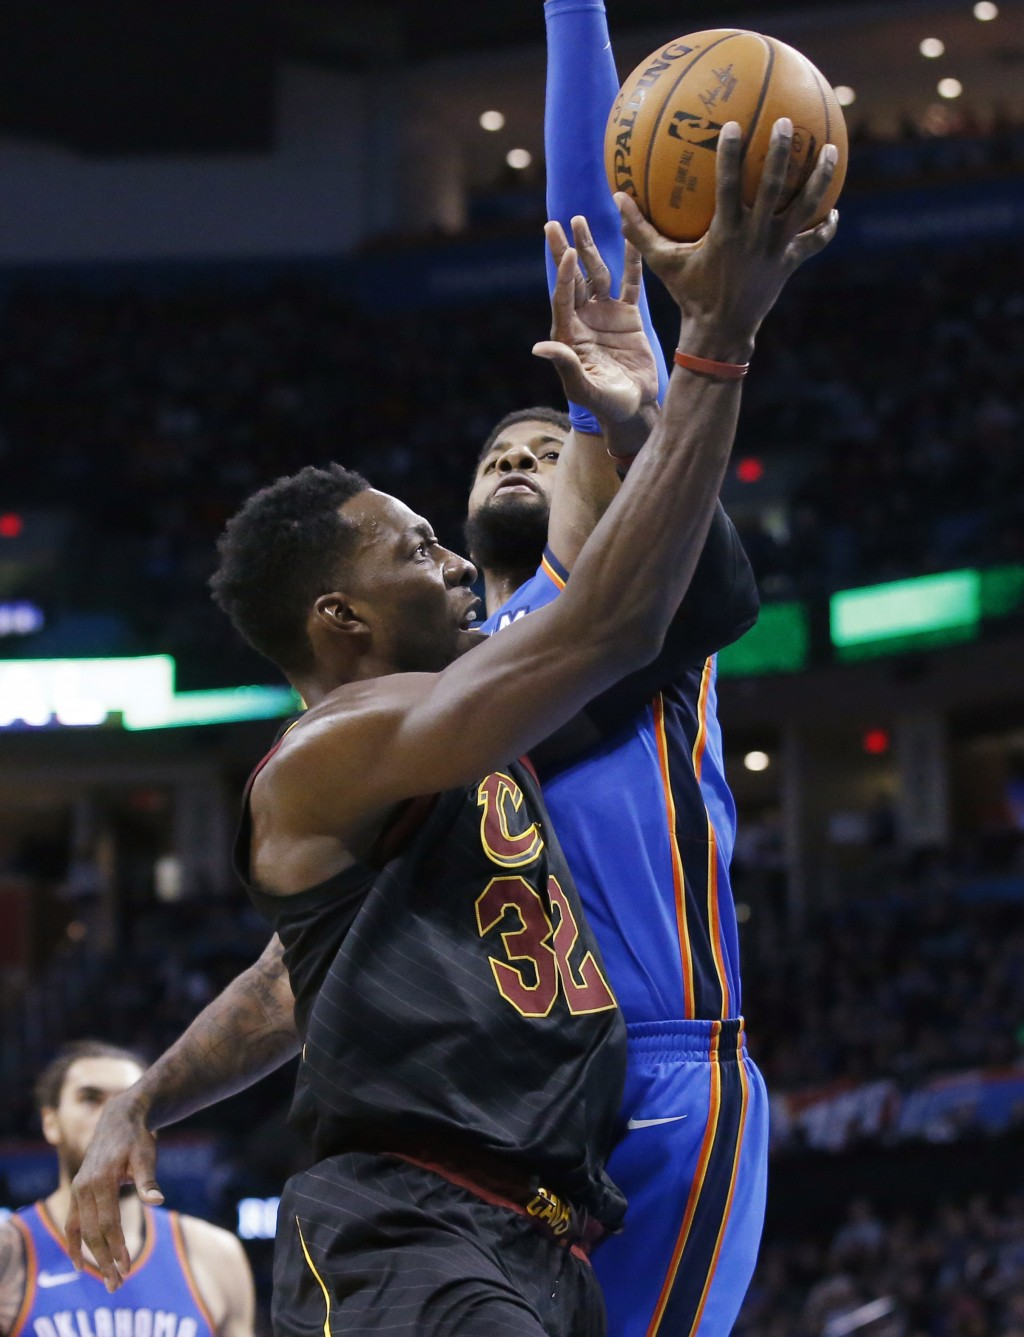 Cleveland Cavaliers forward Jeff Green (32) is fouled by Oklahoma City Thunder forward Paul George during the first half of an NBA basketball game in